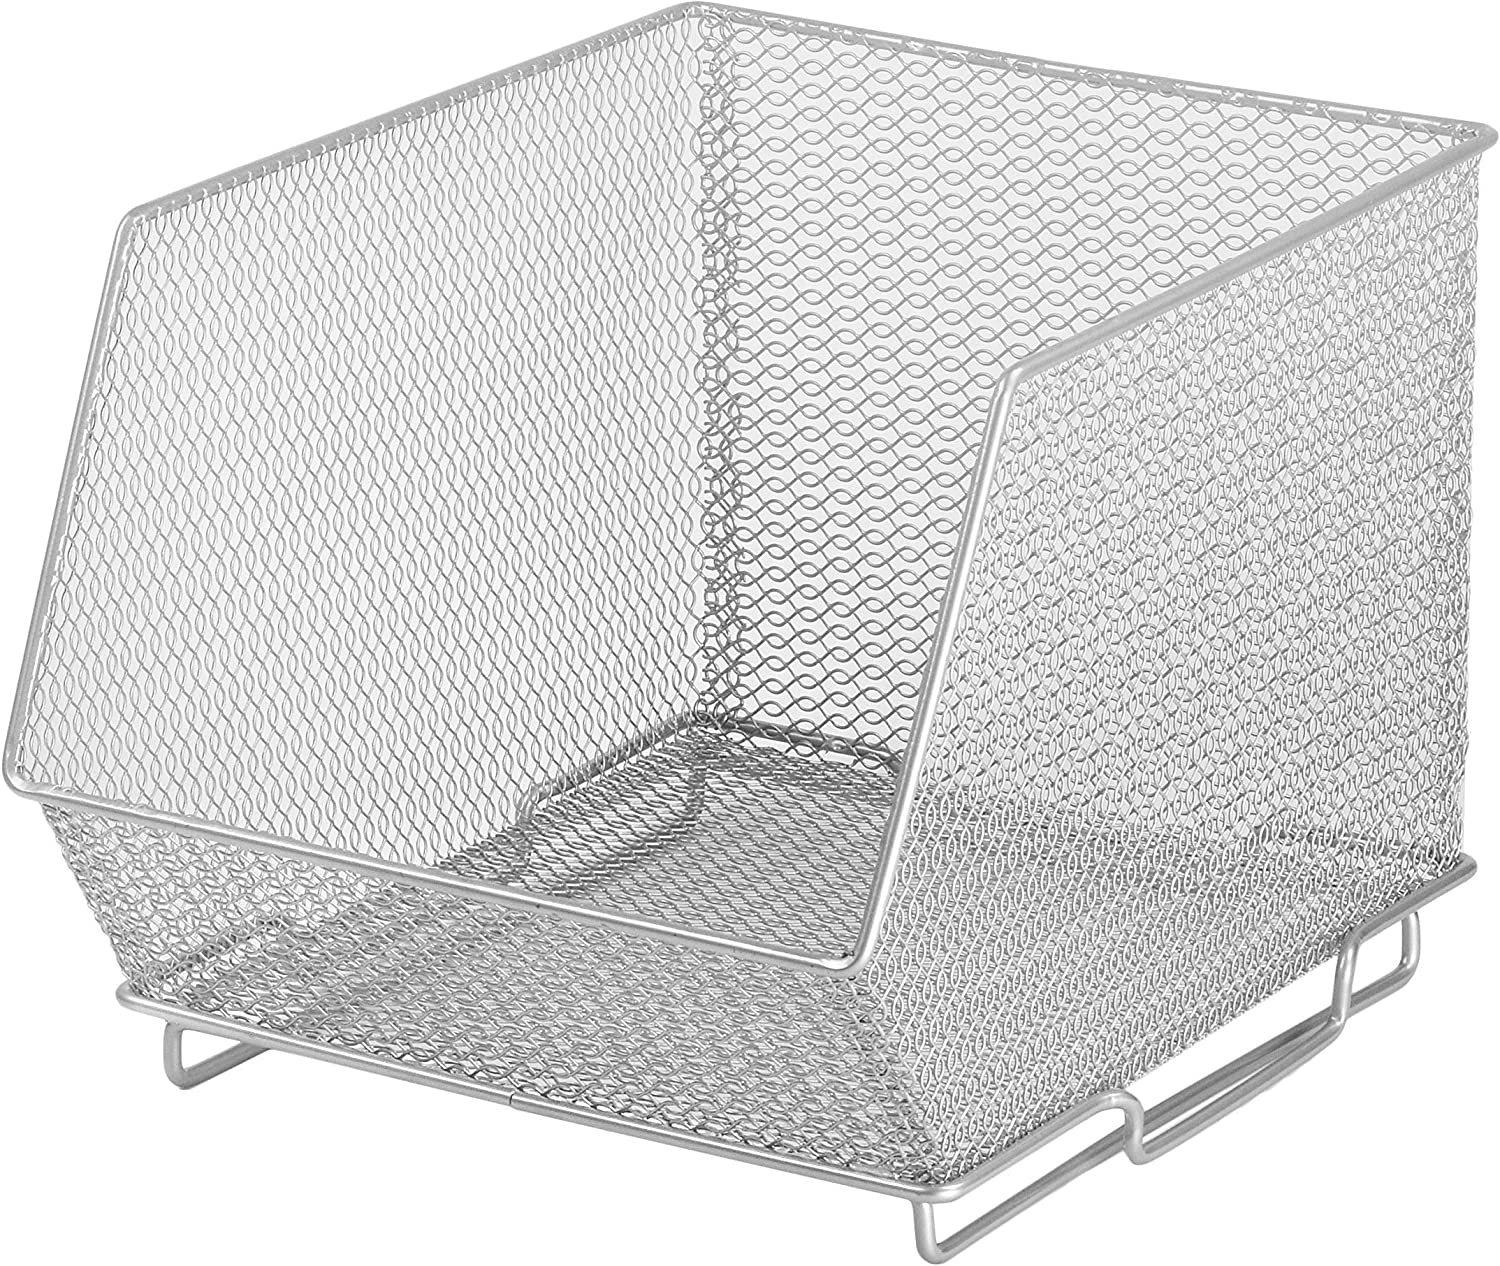 YBM HOME Ybmhome Mesh Stacking Bin Silver (Sold AS 1 BIN) Storage Containers Pantry Organizers Great for Food, Crafts, Cleaning or Pantry Items 1130s (1, Medium 10x8.5x8 Inch)